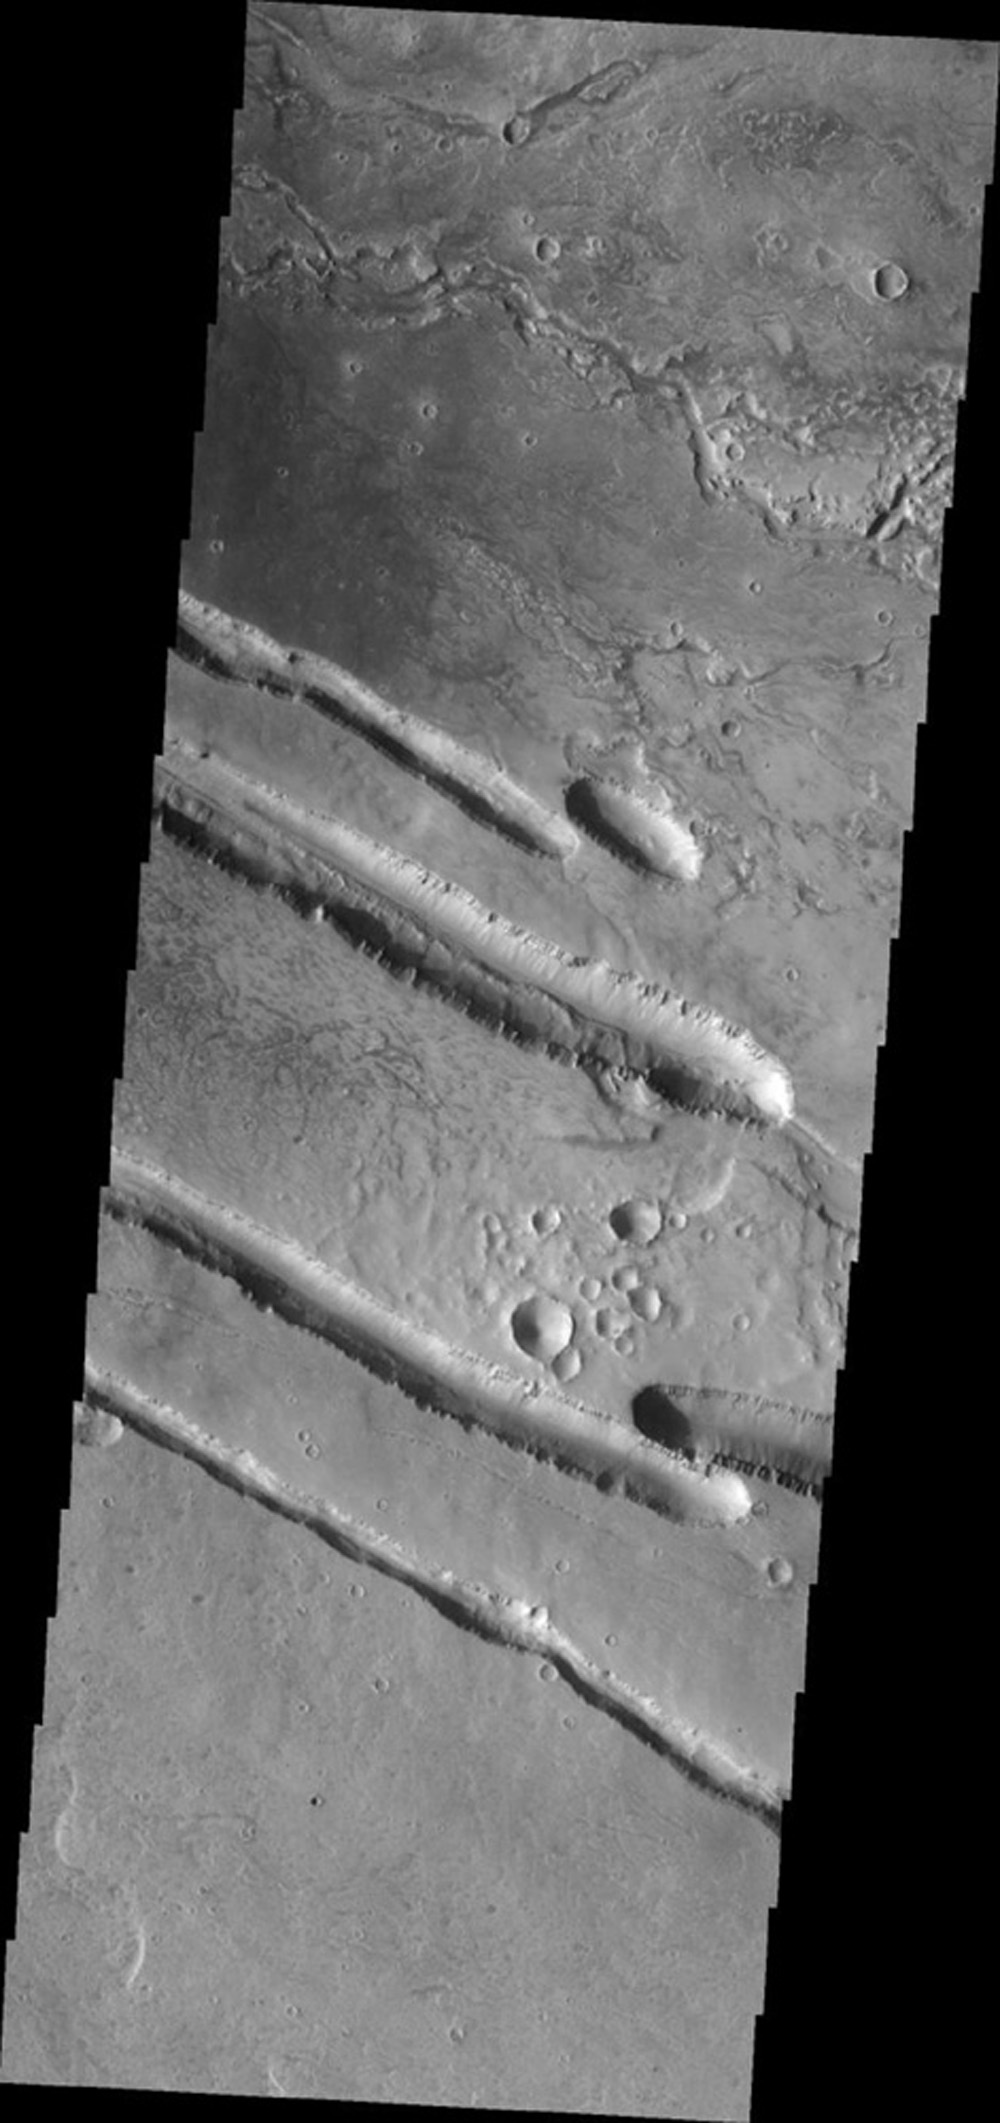 This image from NASA's Mars Odyssey shows fracturing and collapse related to the Elysium Volcanic Complex on Mars.